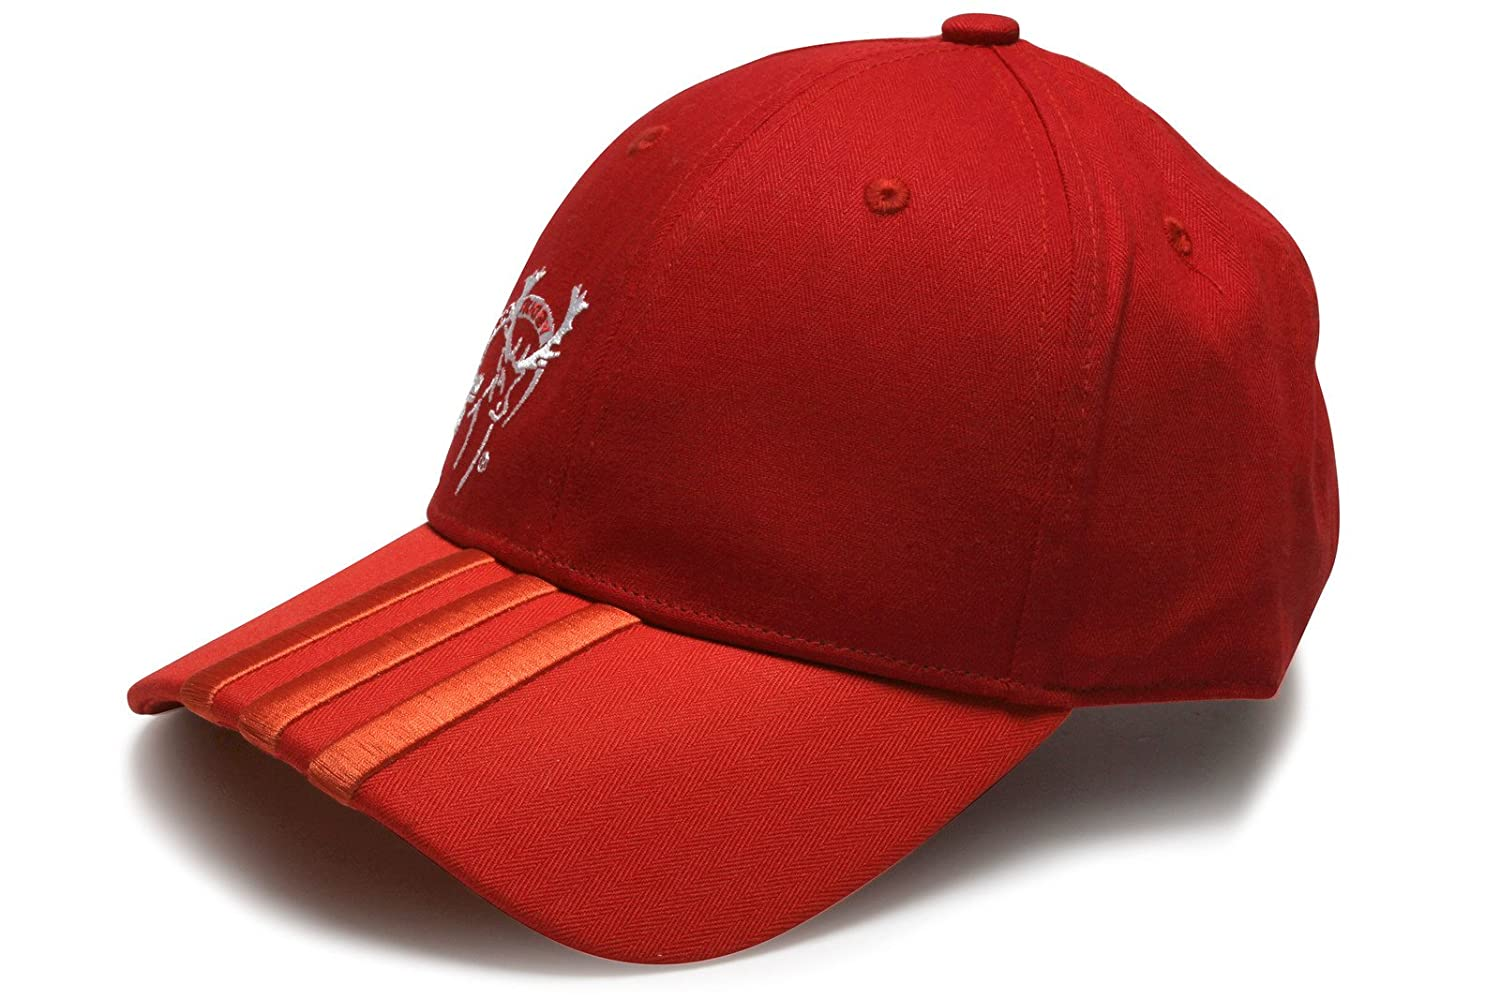 b74a2192ea6 adidas Munster 2015 16 3 Stripe Rugby Cap - Size One Size  Amazon.co.uk   Sports   Outdoors